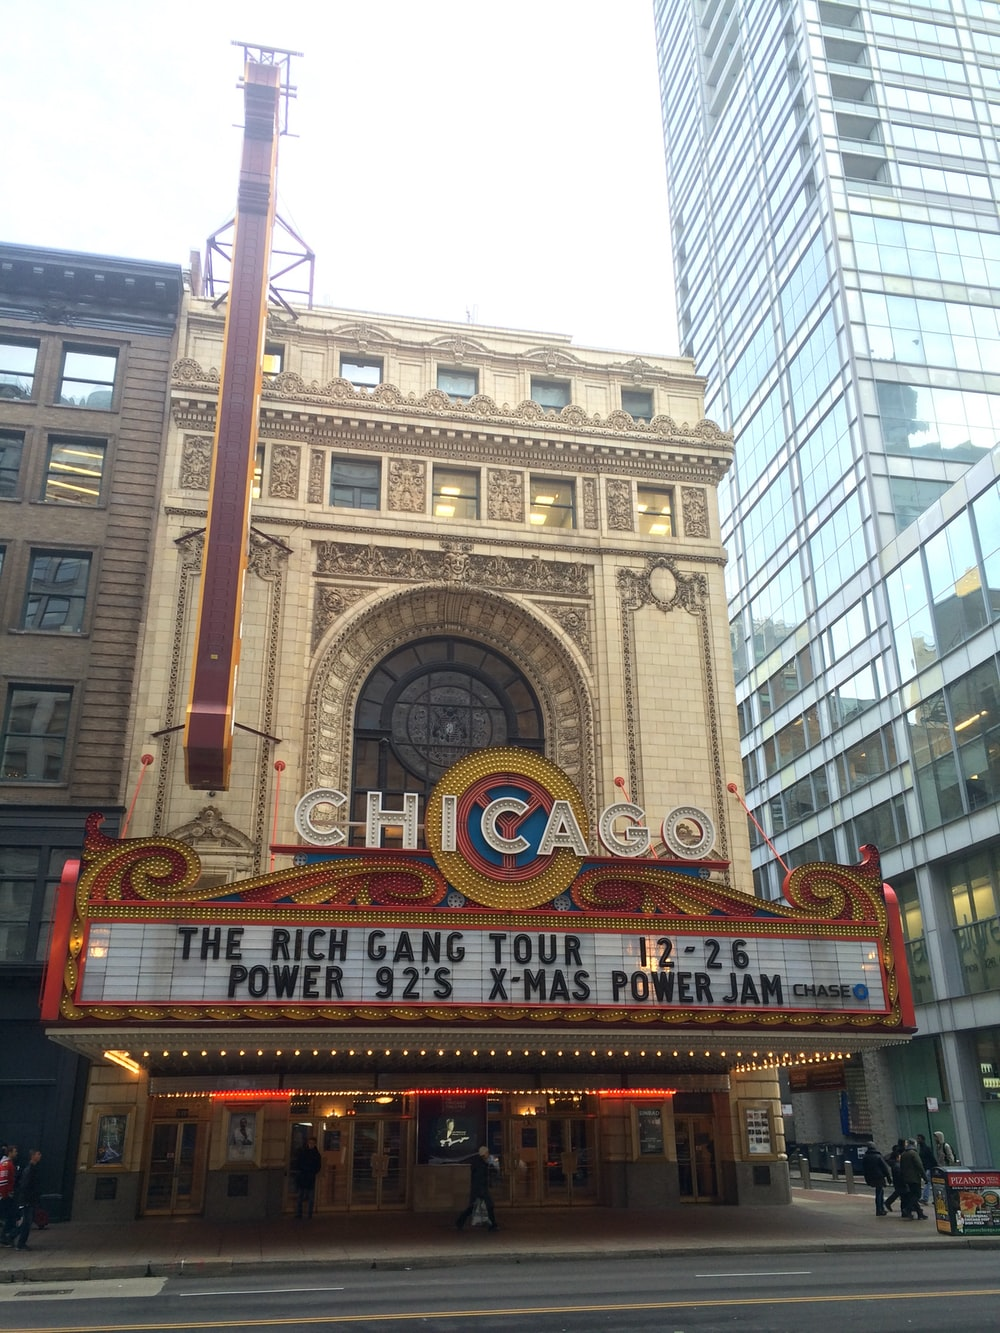 Chicago The Rich Gang Tour building